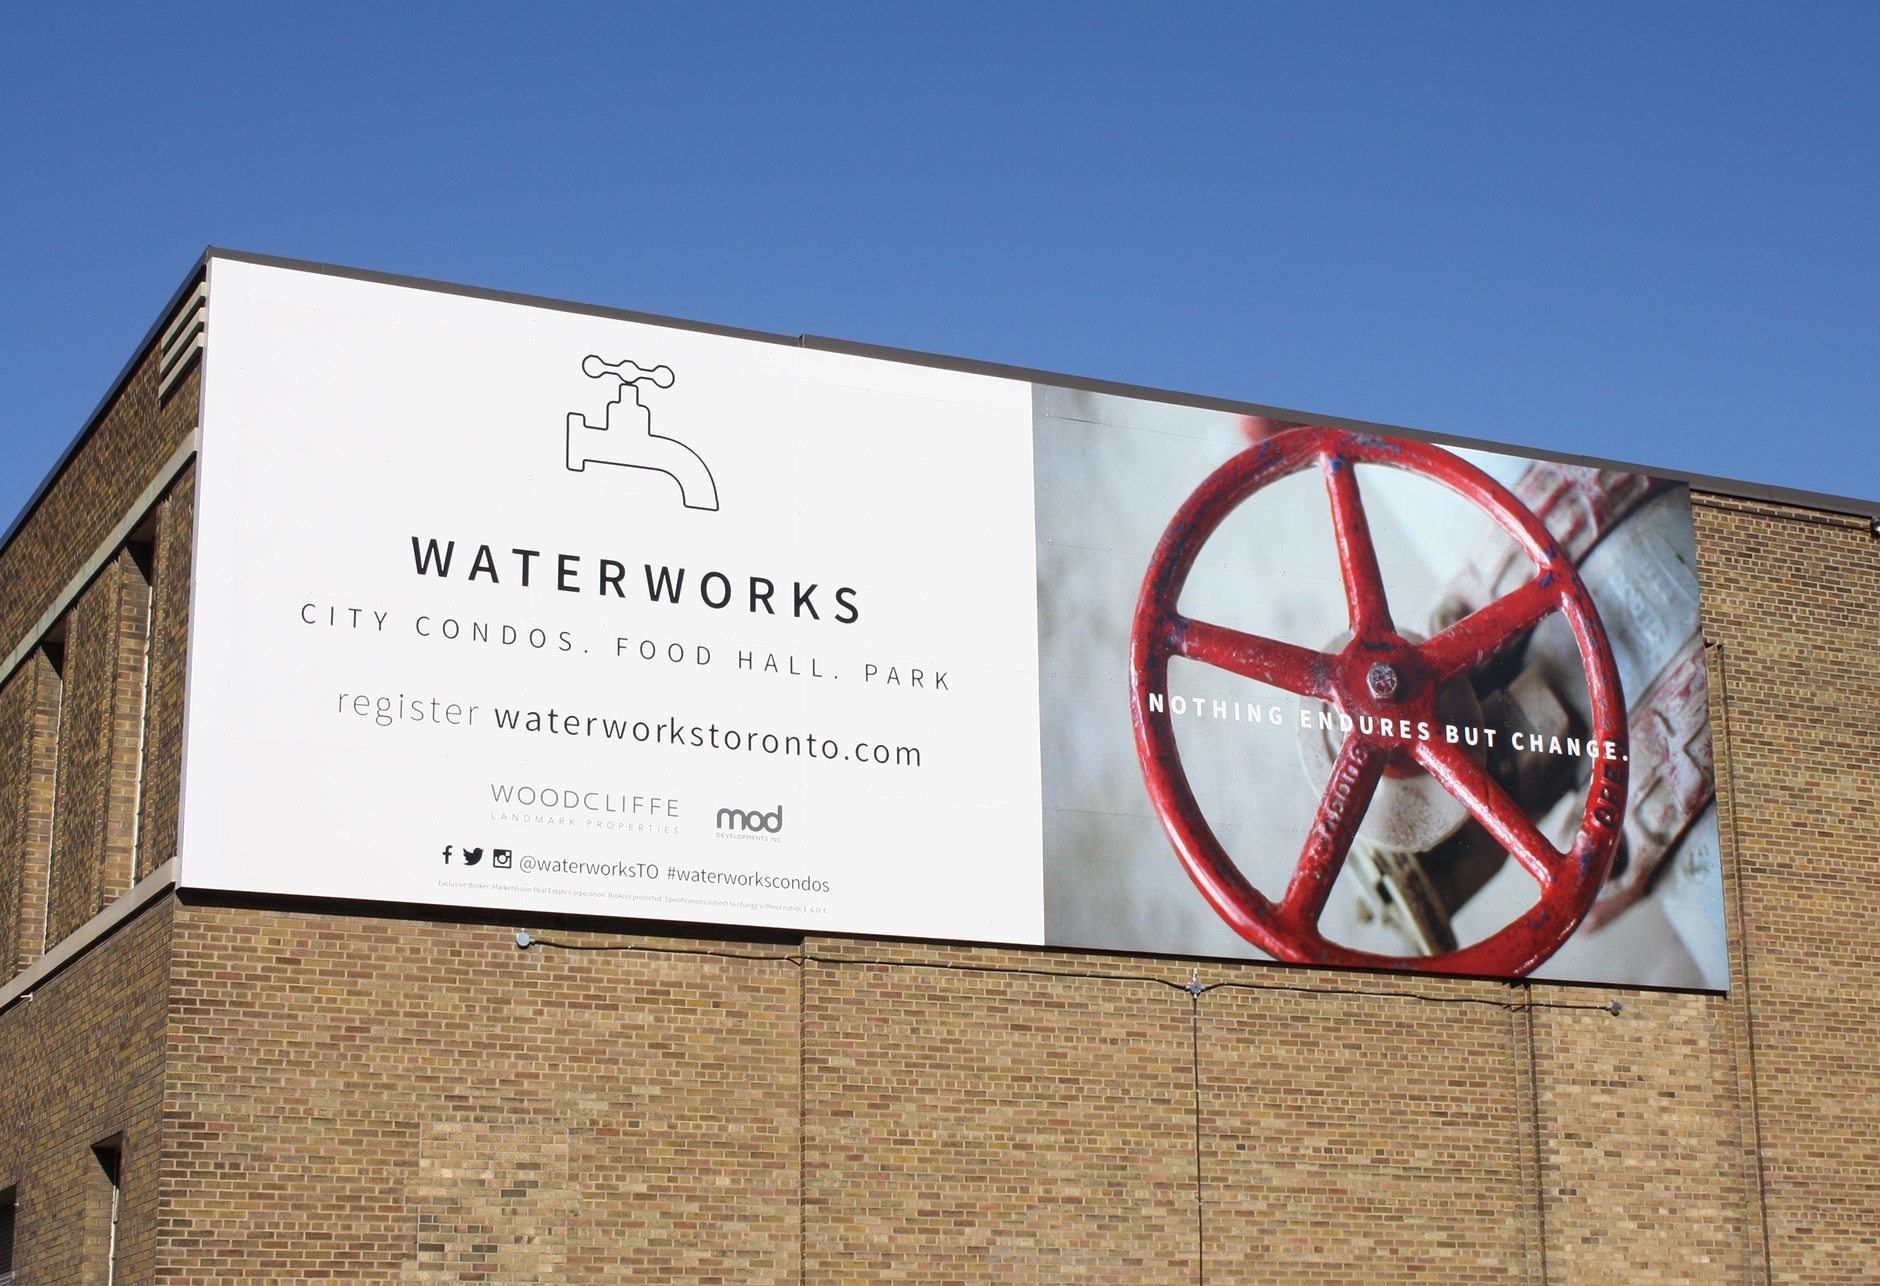 waterworks_adelaide-sign_1880x1286